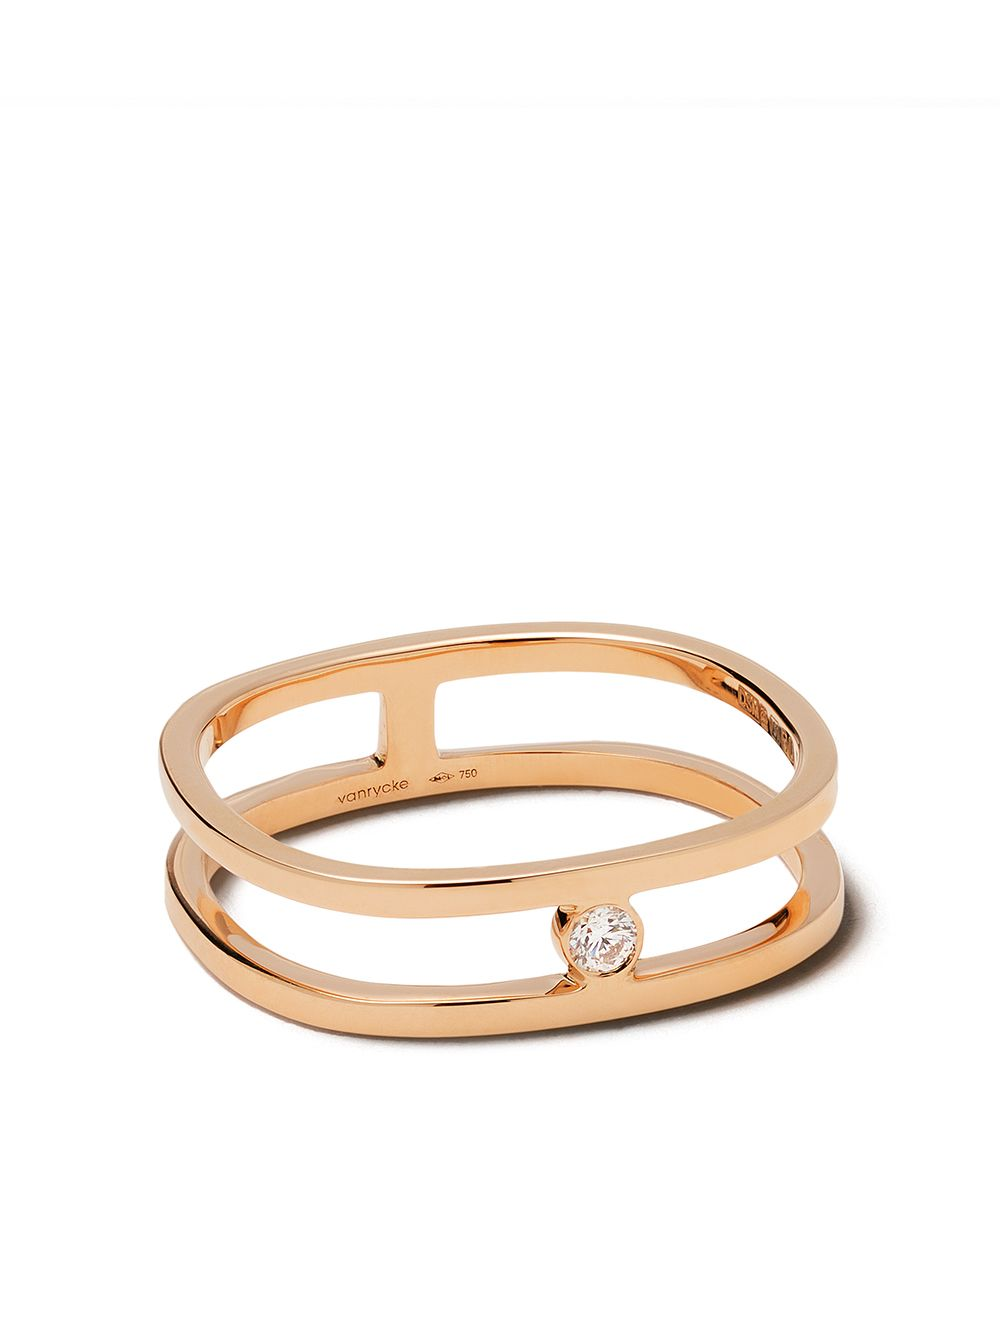 Vanrycke 18kt rose gold Charlie diamond ring - 18KT ROSE GOLD DIAMONDS von Vanrycke